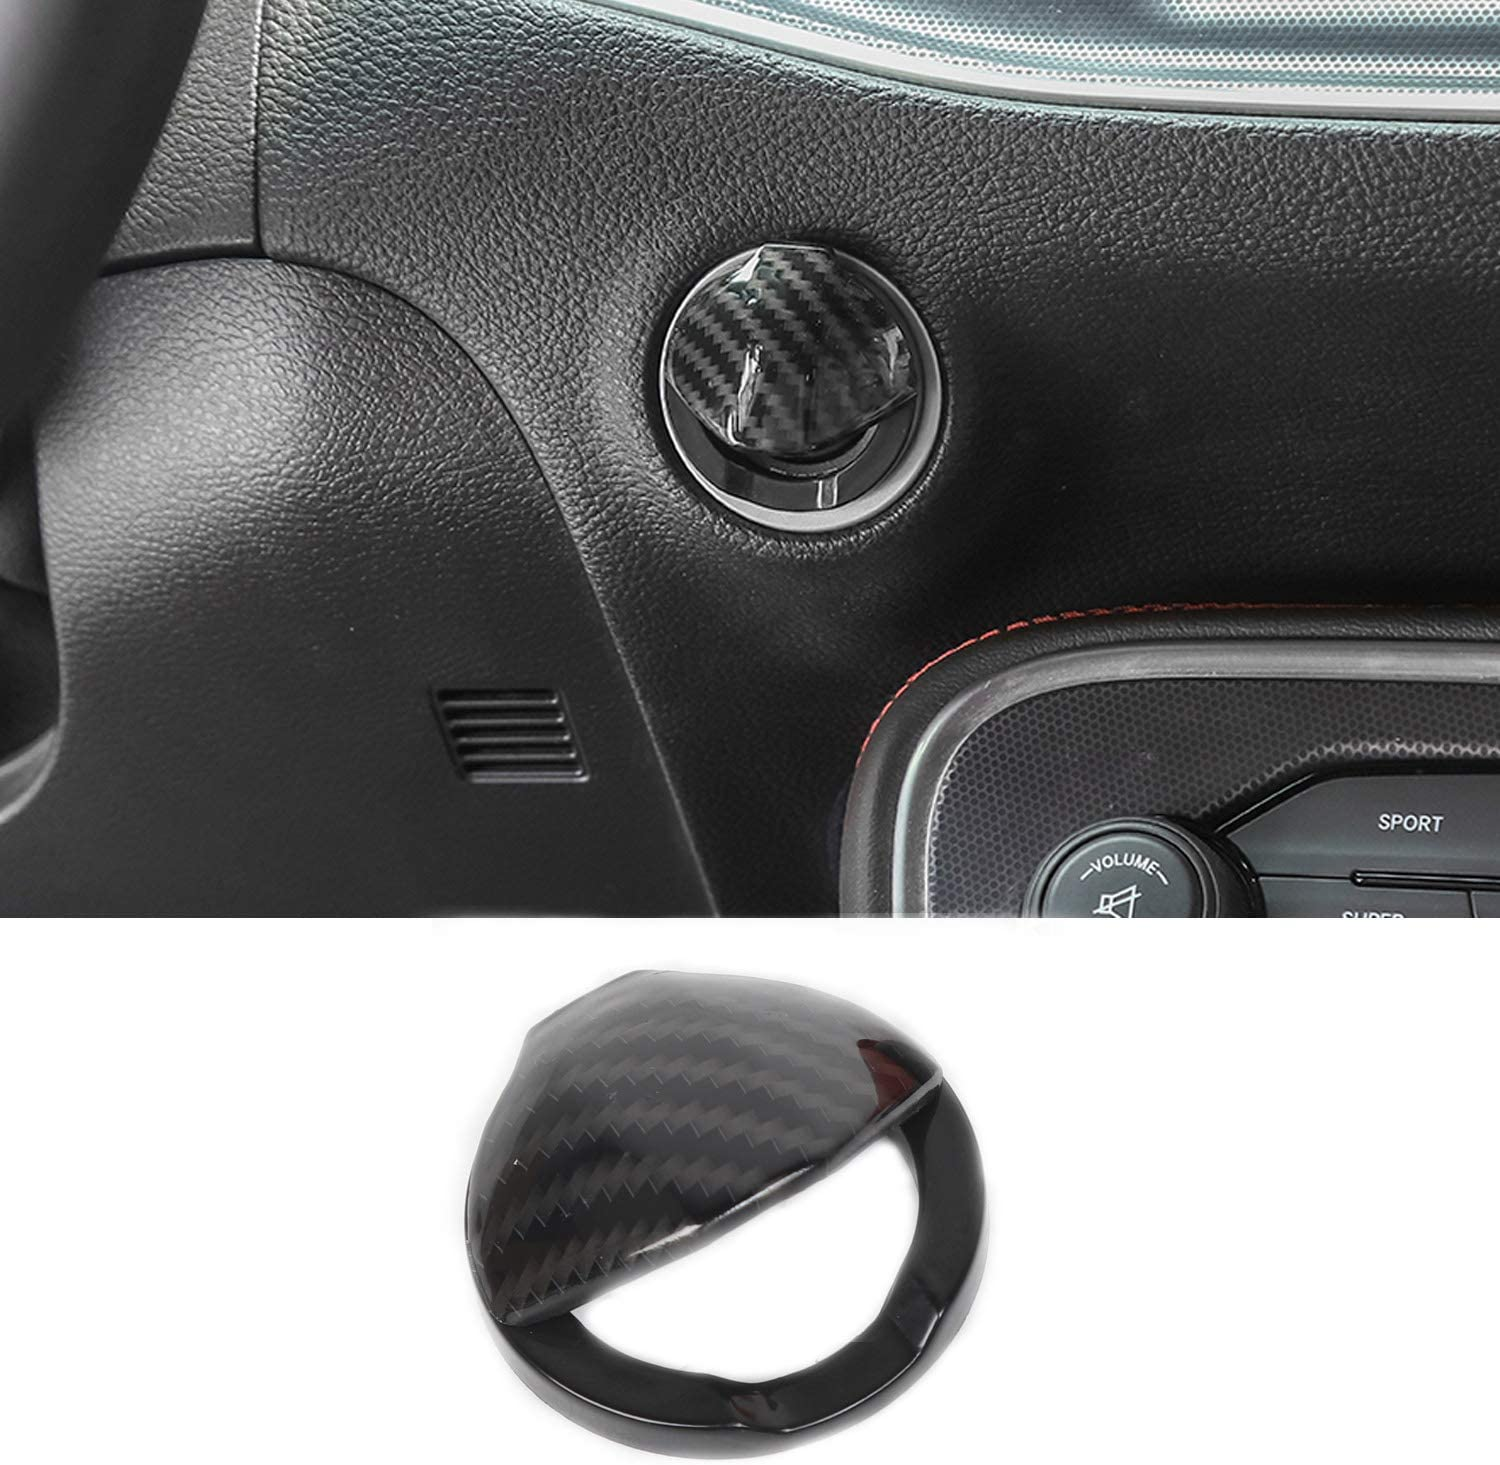 Voodonala for Challenger Real Carbon Fiber Headlight Switch Button Knob Trim for Dodge Challenger 2015-2020